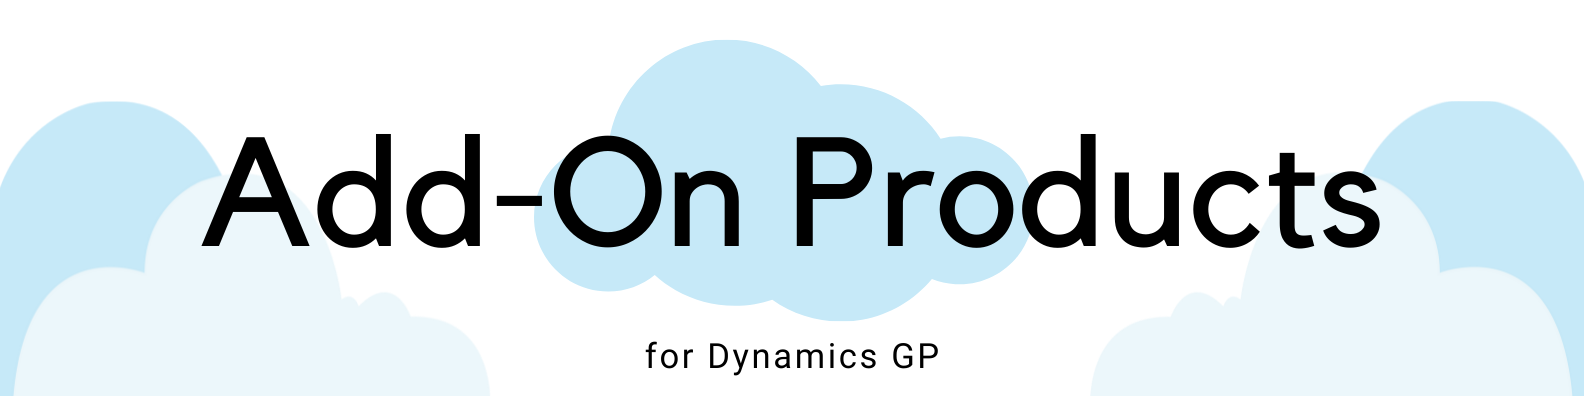 ICAN Header Add-On Products Dynamics GP